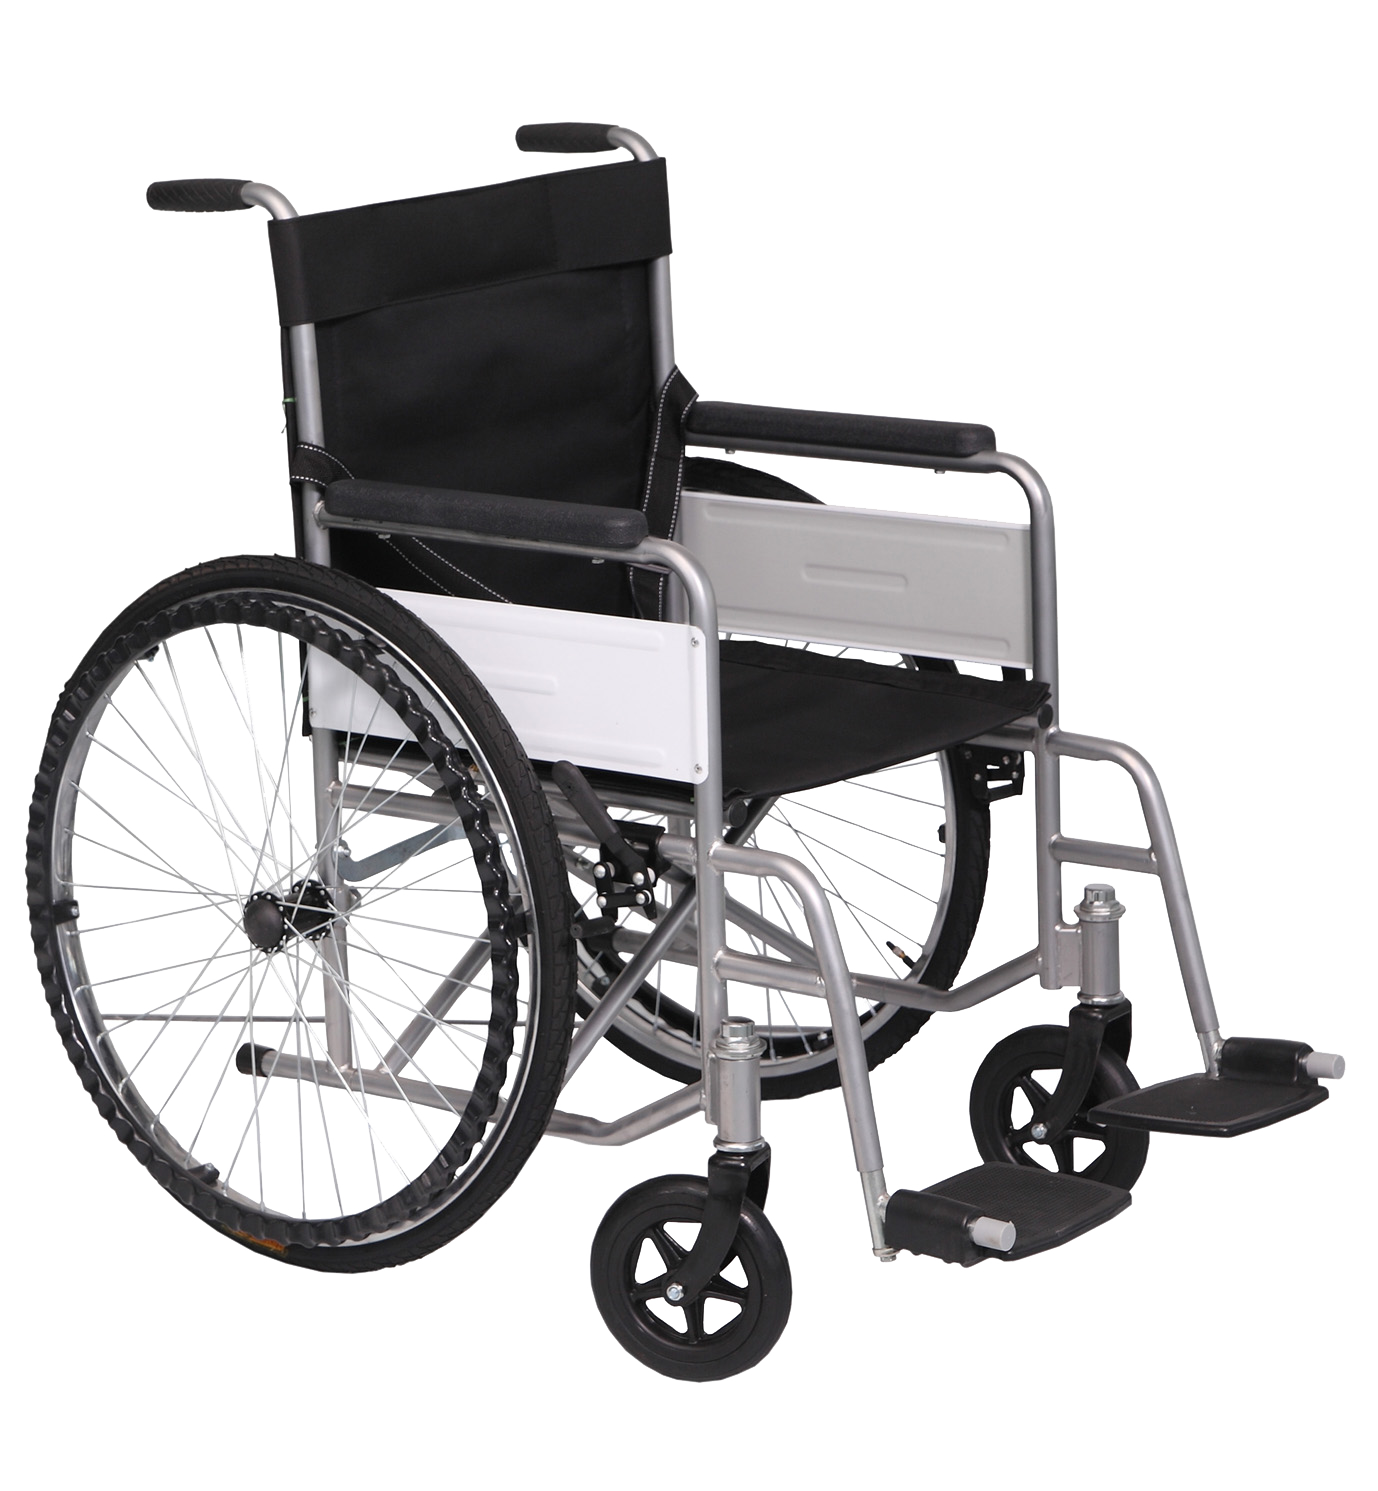 Wheelchair PNG Image